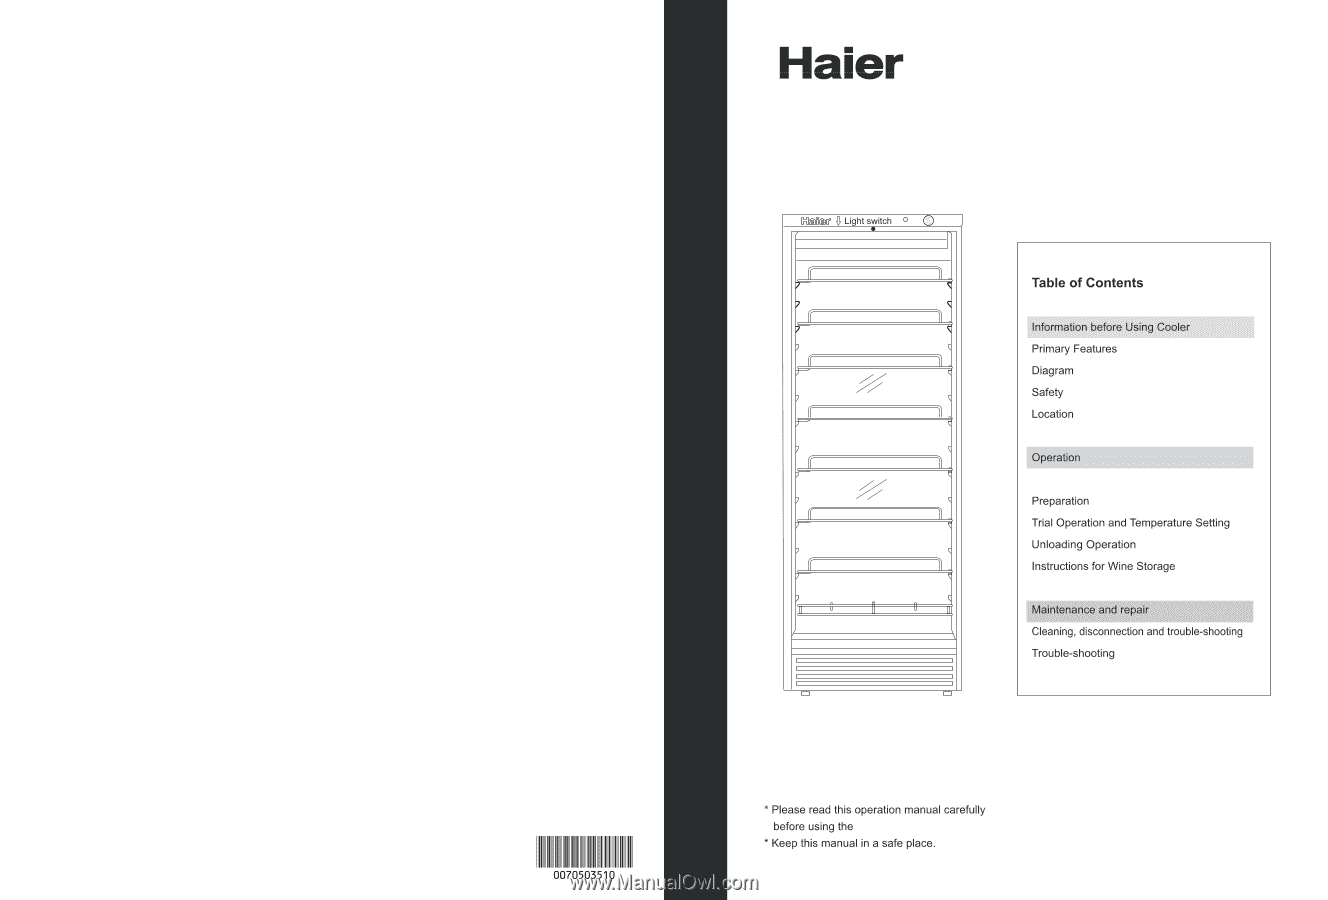 HAIER MANUAL PDF - Auto Electrical Wiring Diagram on